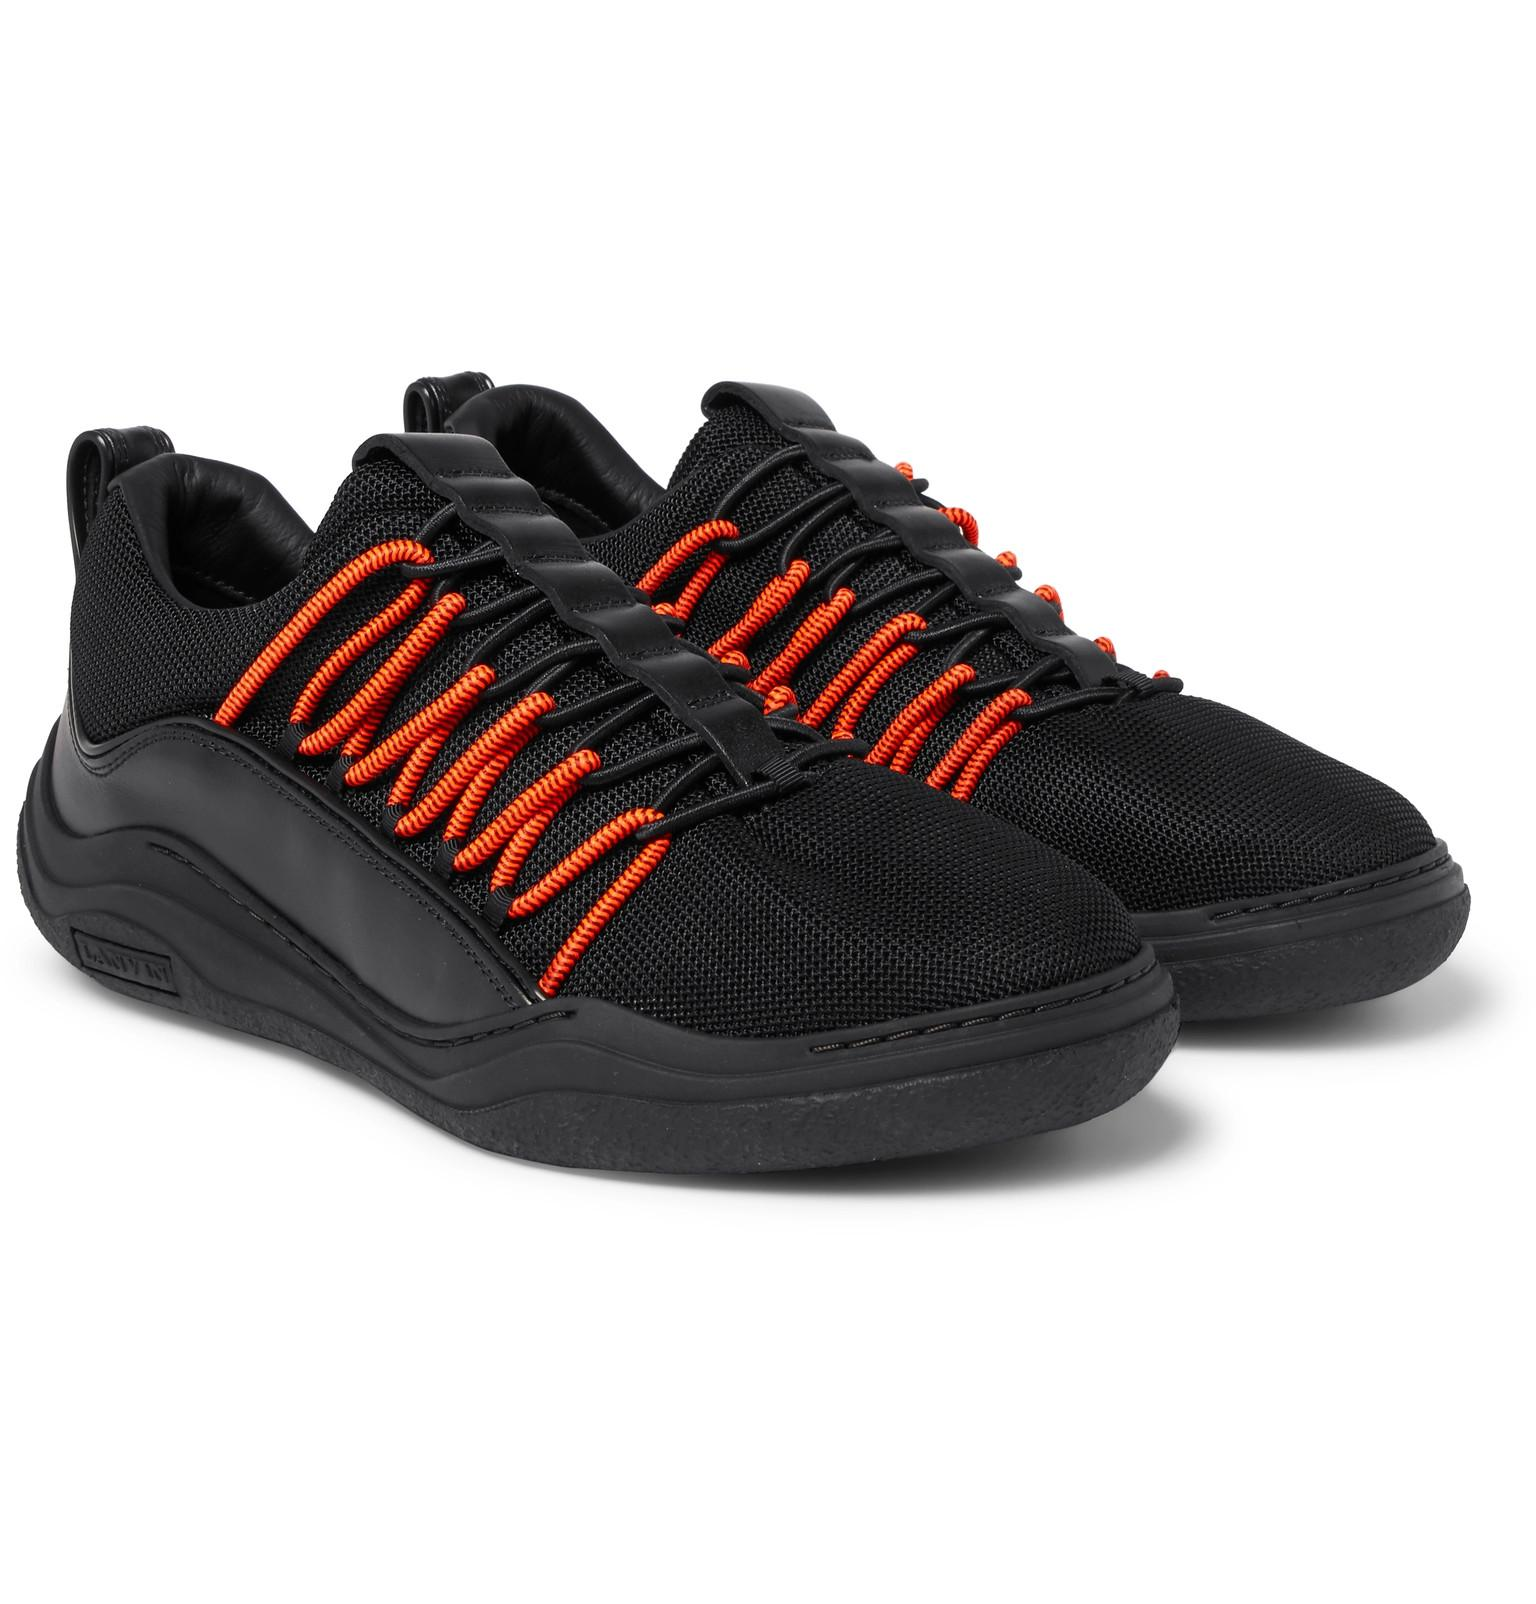 Leather-trimmed Mesh Sneakers Lanvin FiKRCd5A